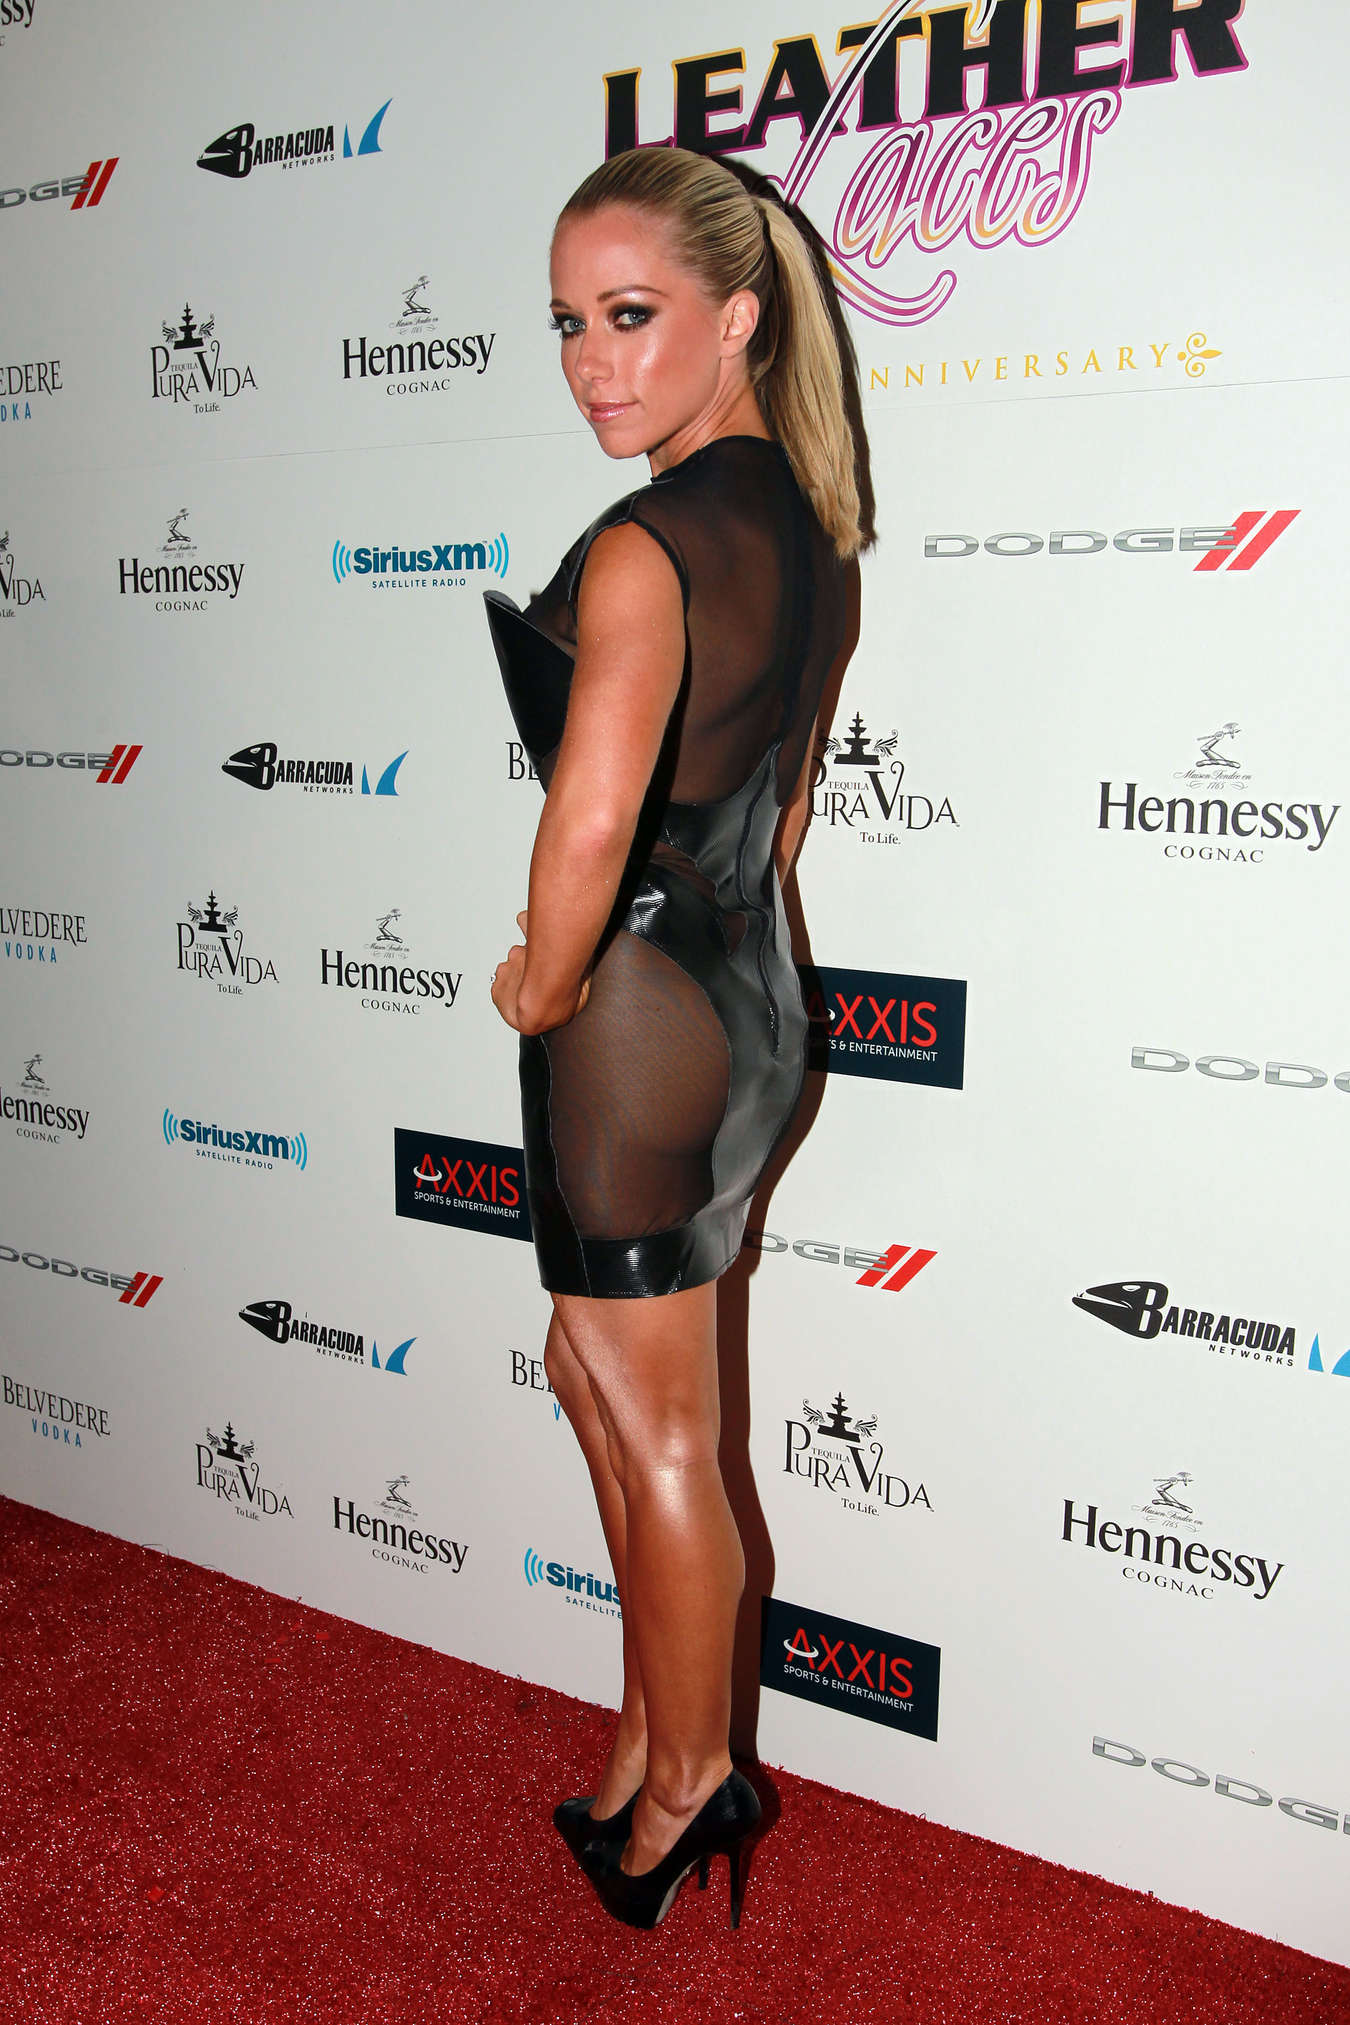 Kendra Wilkinson at Leather Laces Super Bowl Party